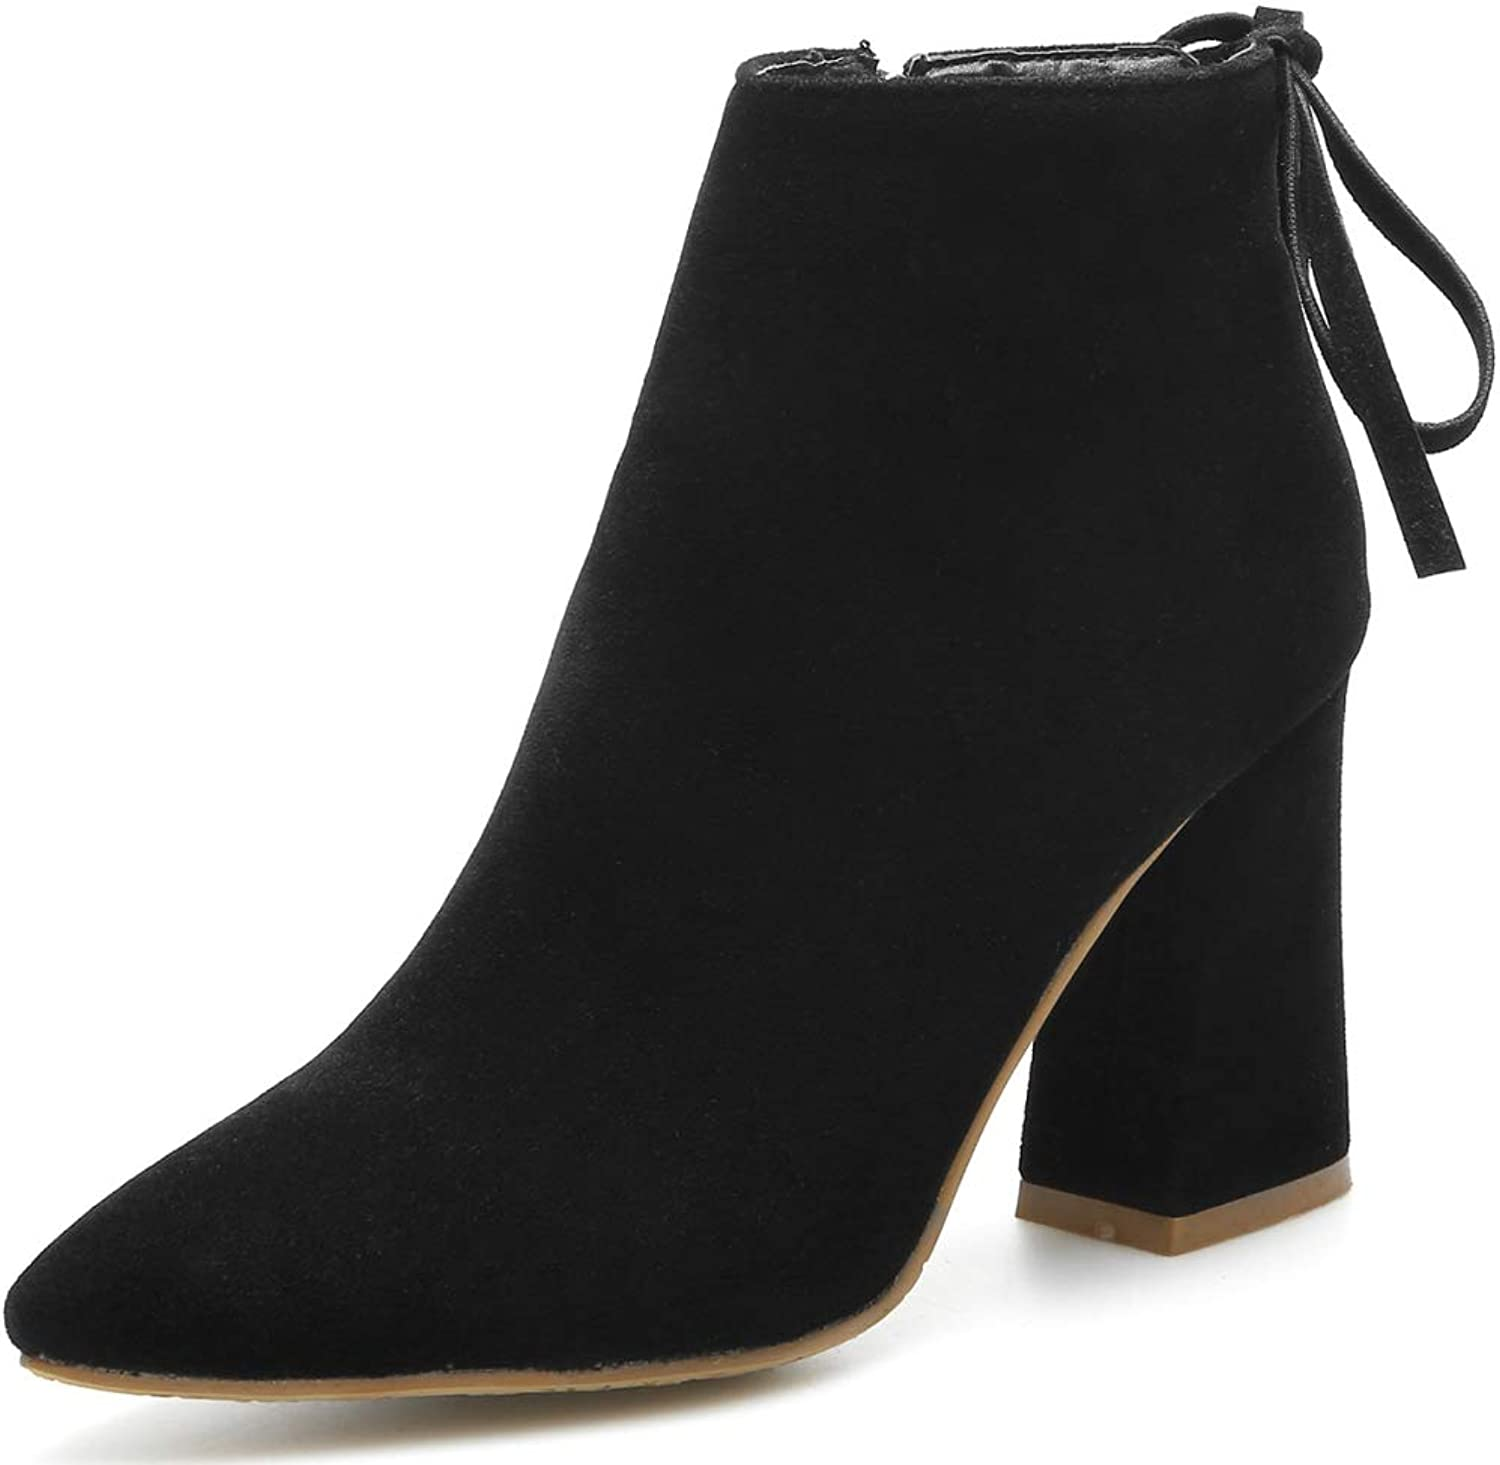 Womens Faux Suede Ankle Boot Block Heel Pointed Toe Zip Martin Boots,Black-EU 43=12B(M) US